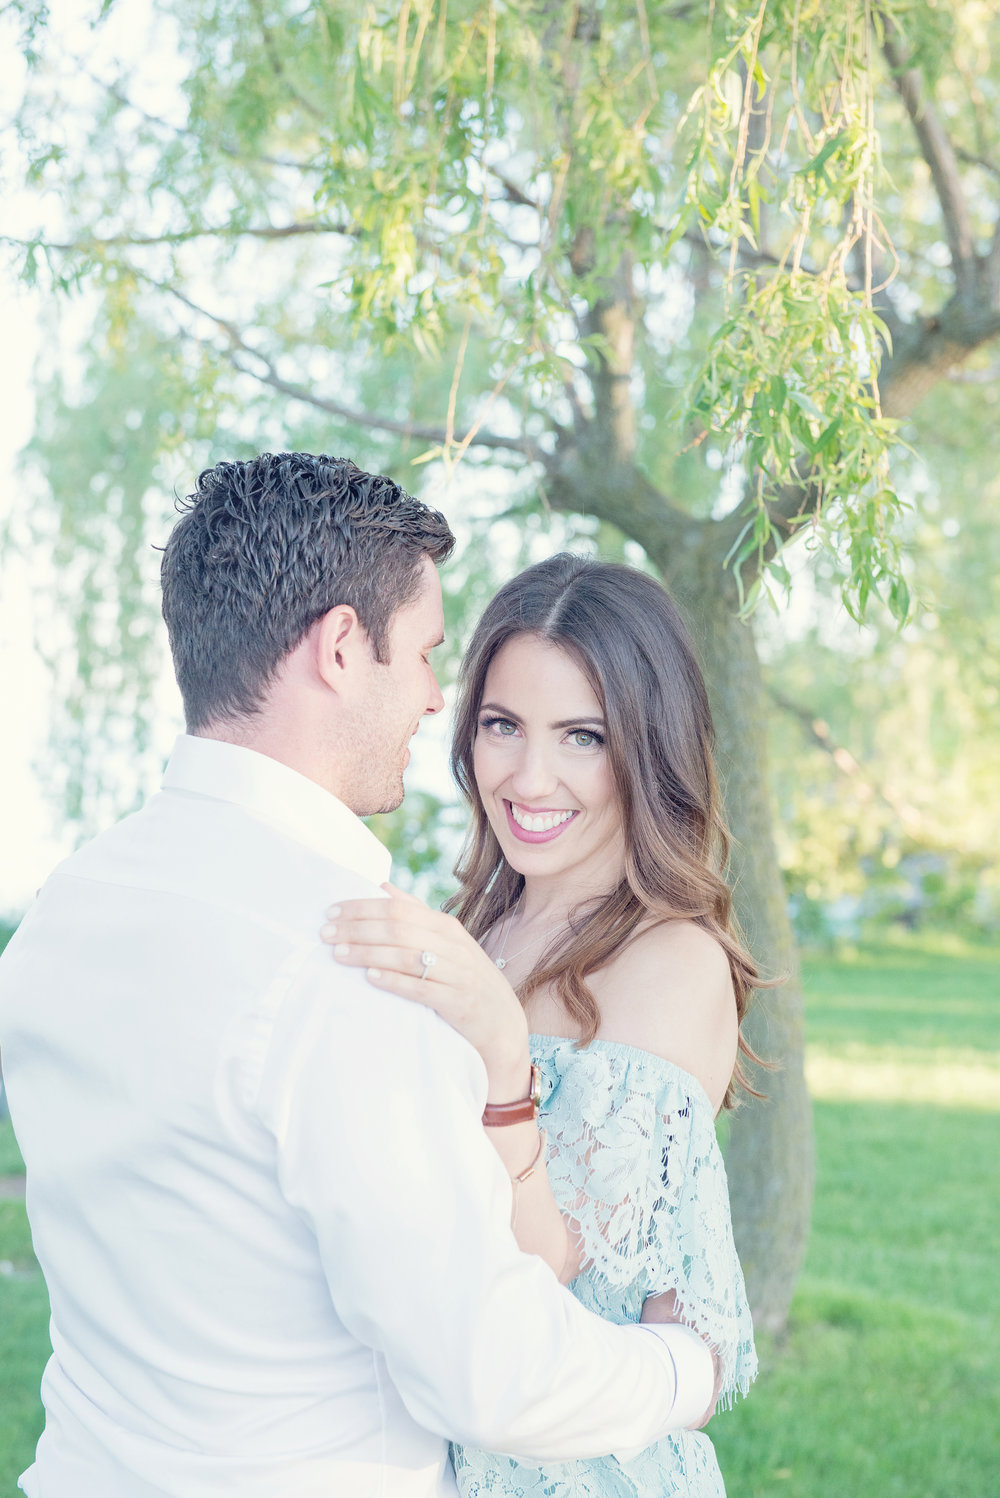 paula_ryan_engagement-90.jpg